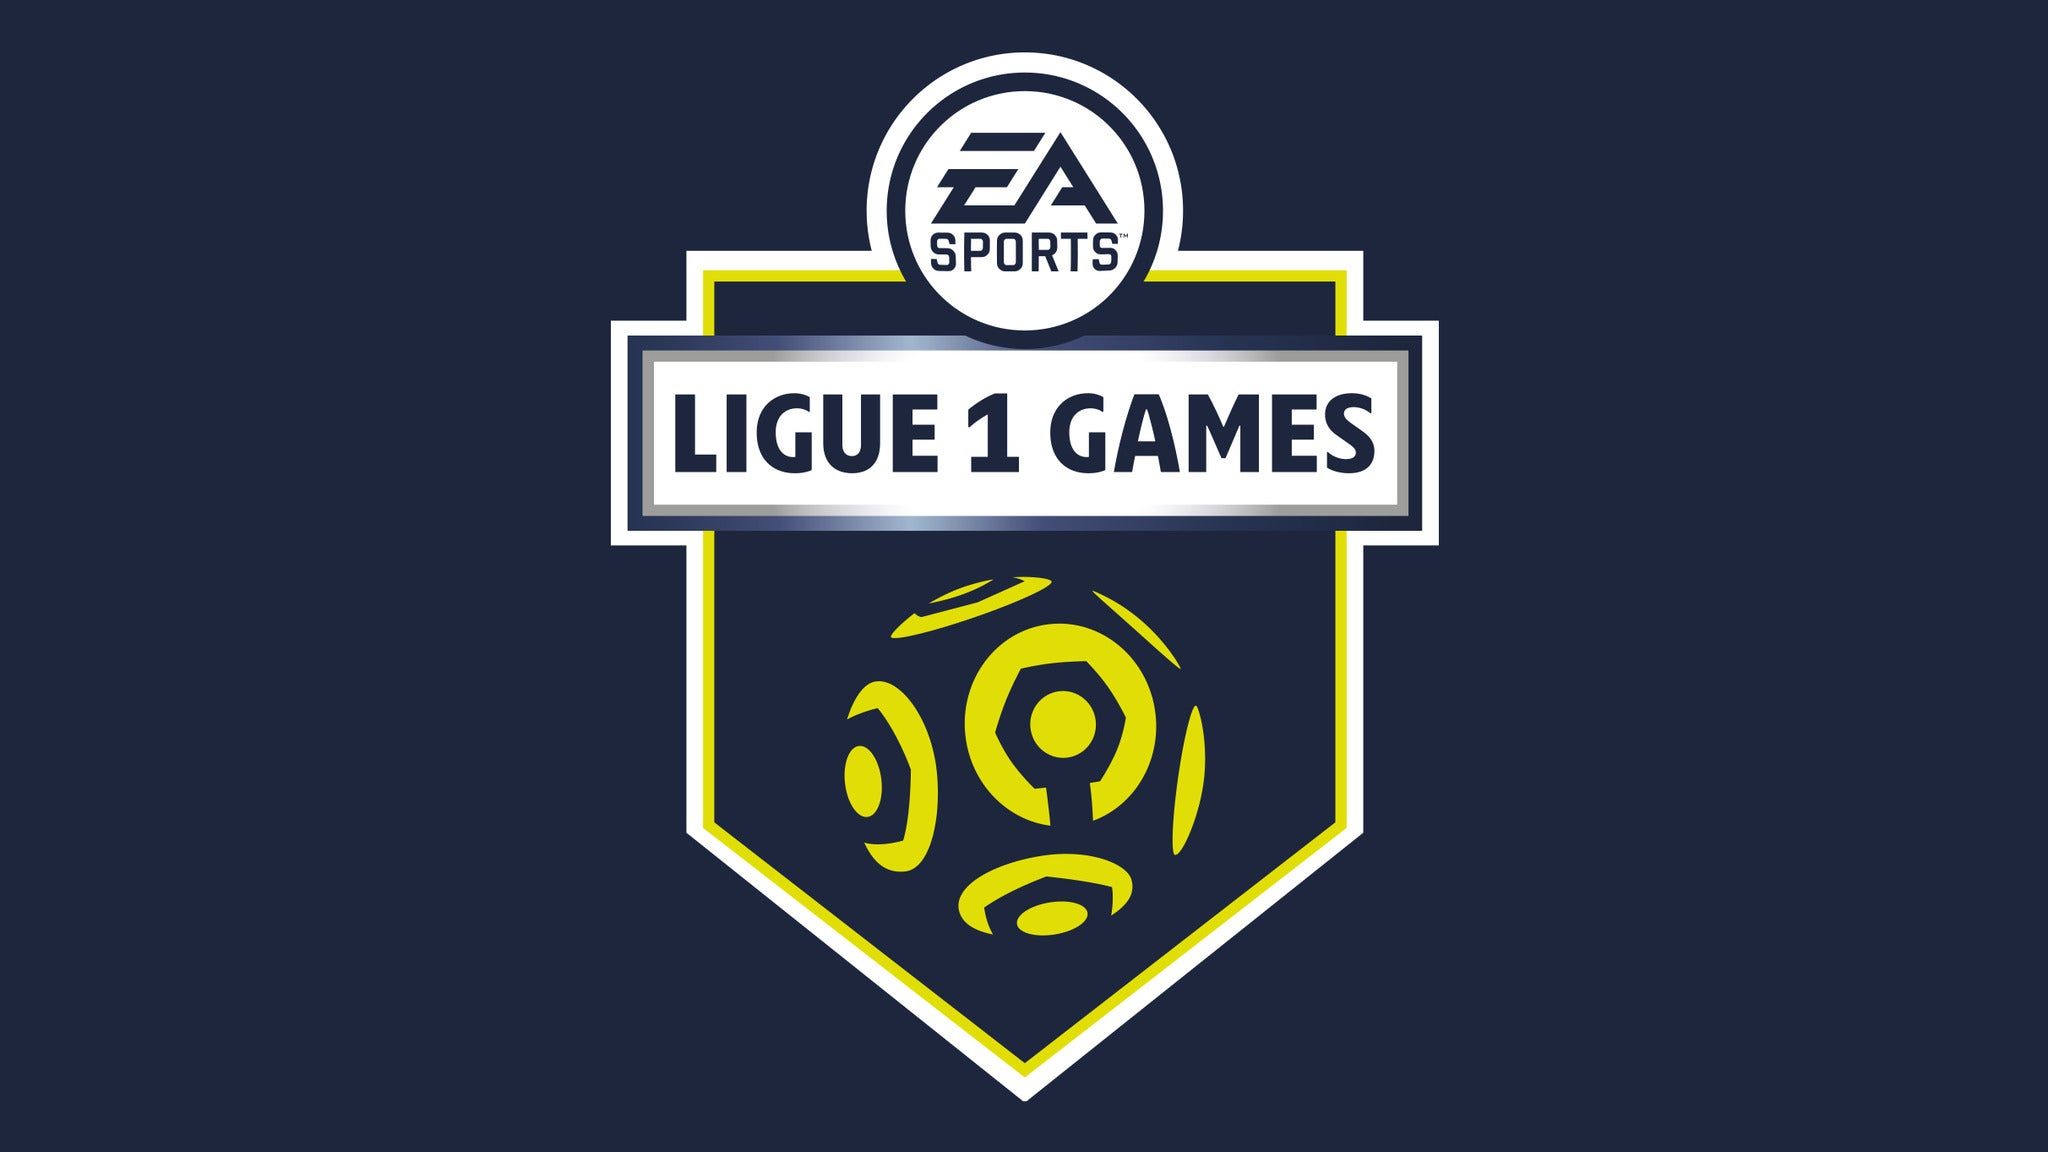 EA Ligue 1 Games - Day 1